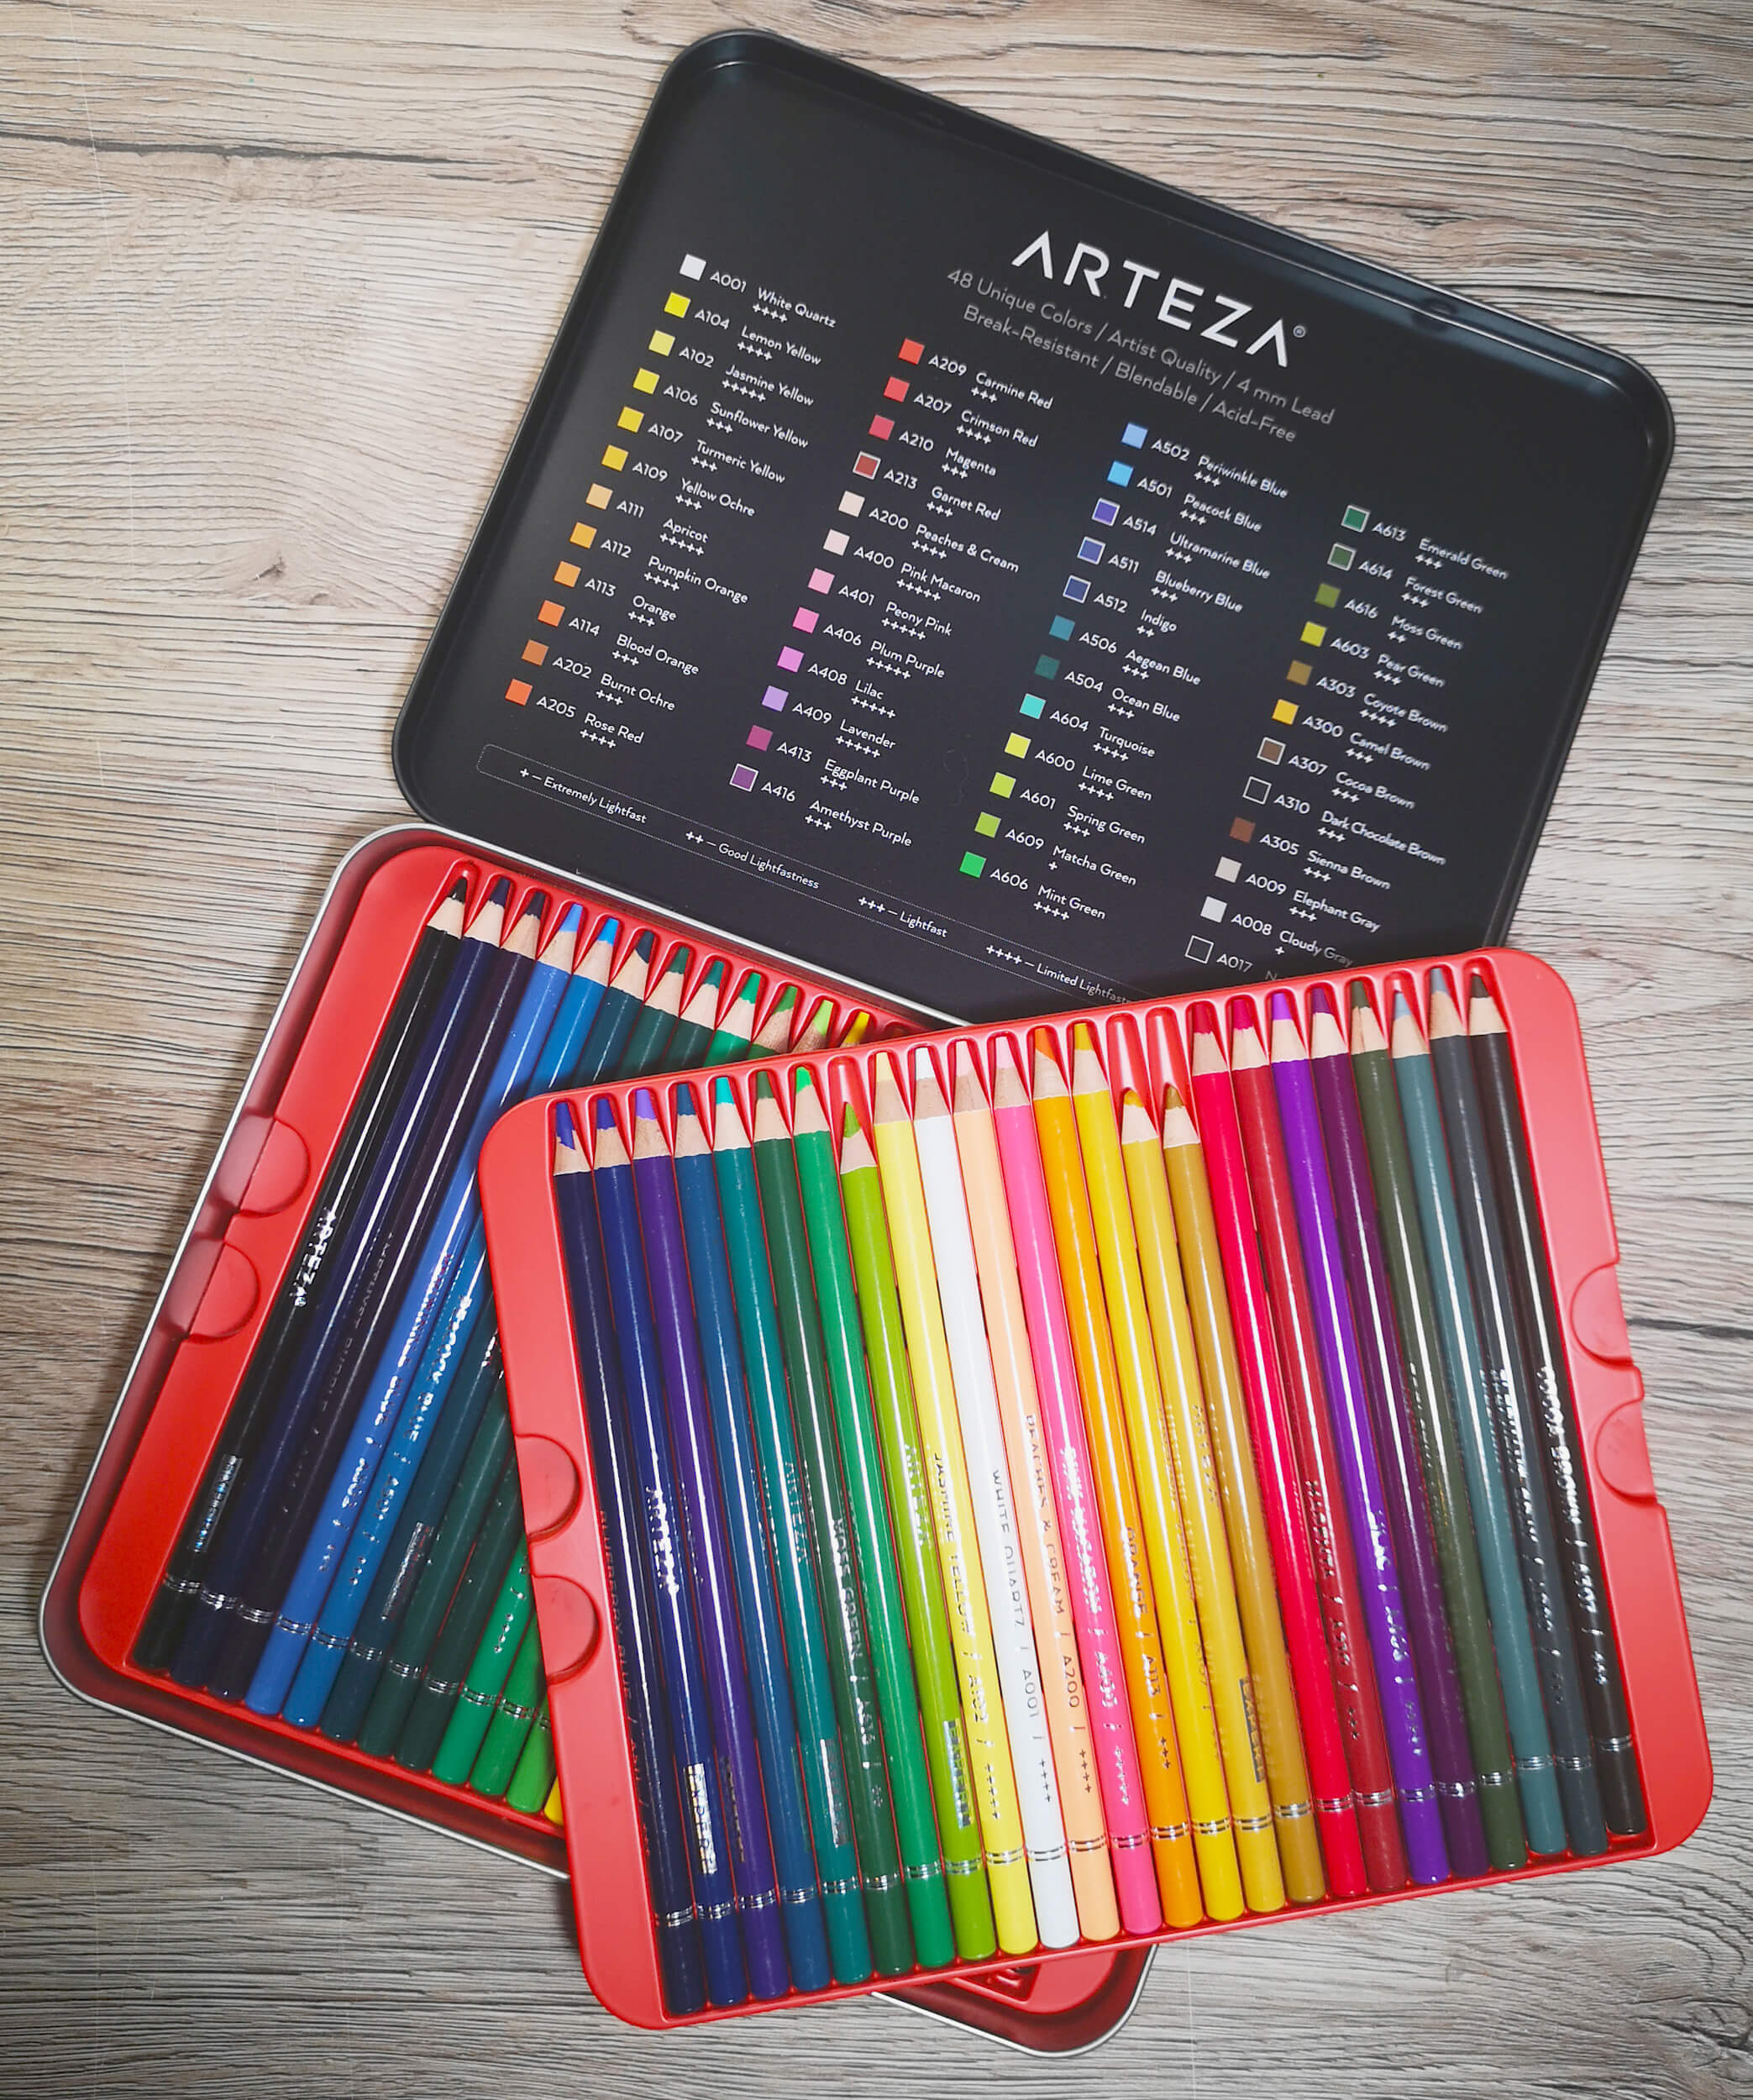 Review: Arteza Expert Colored Pencils